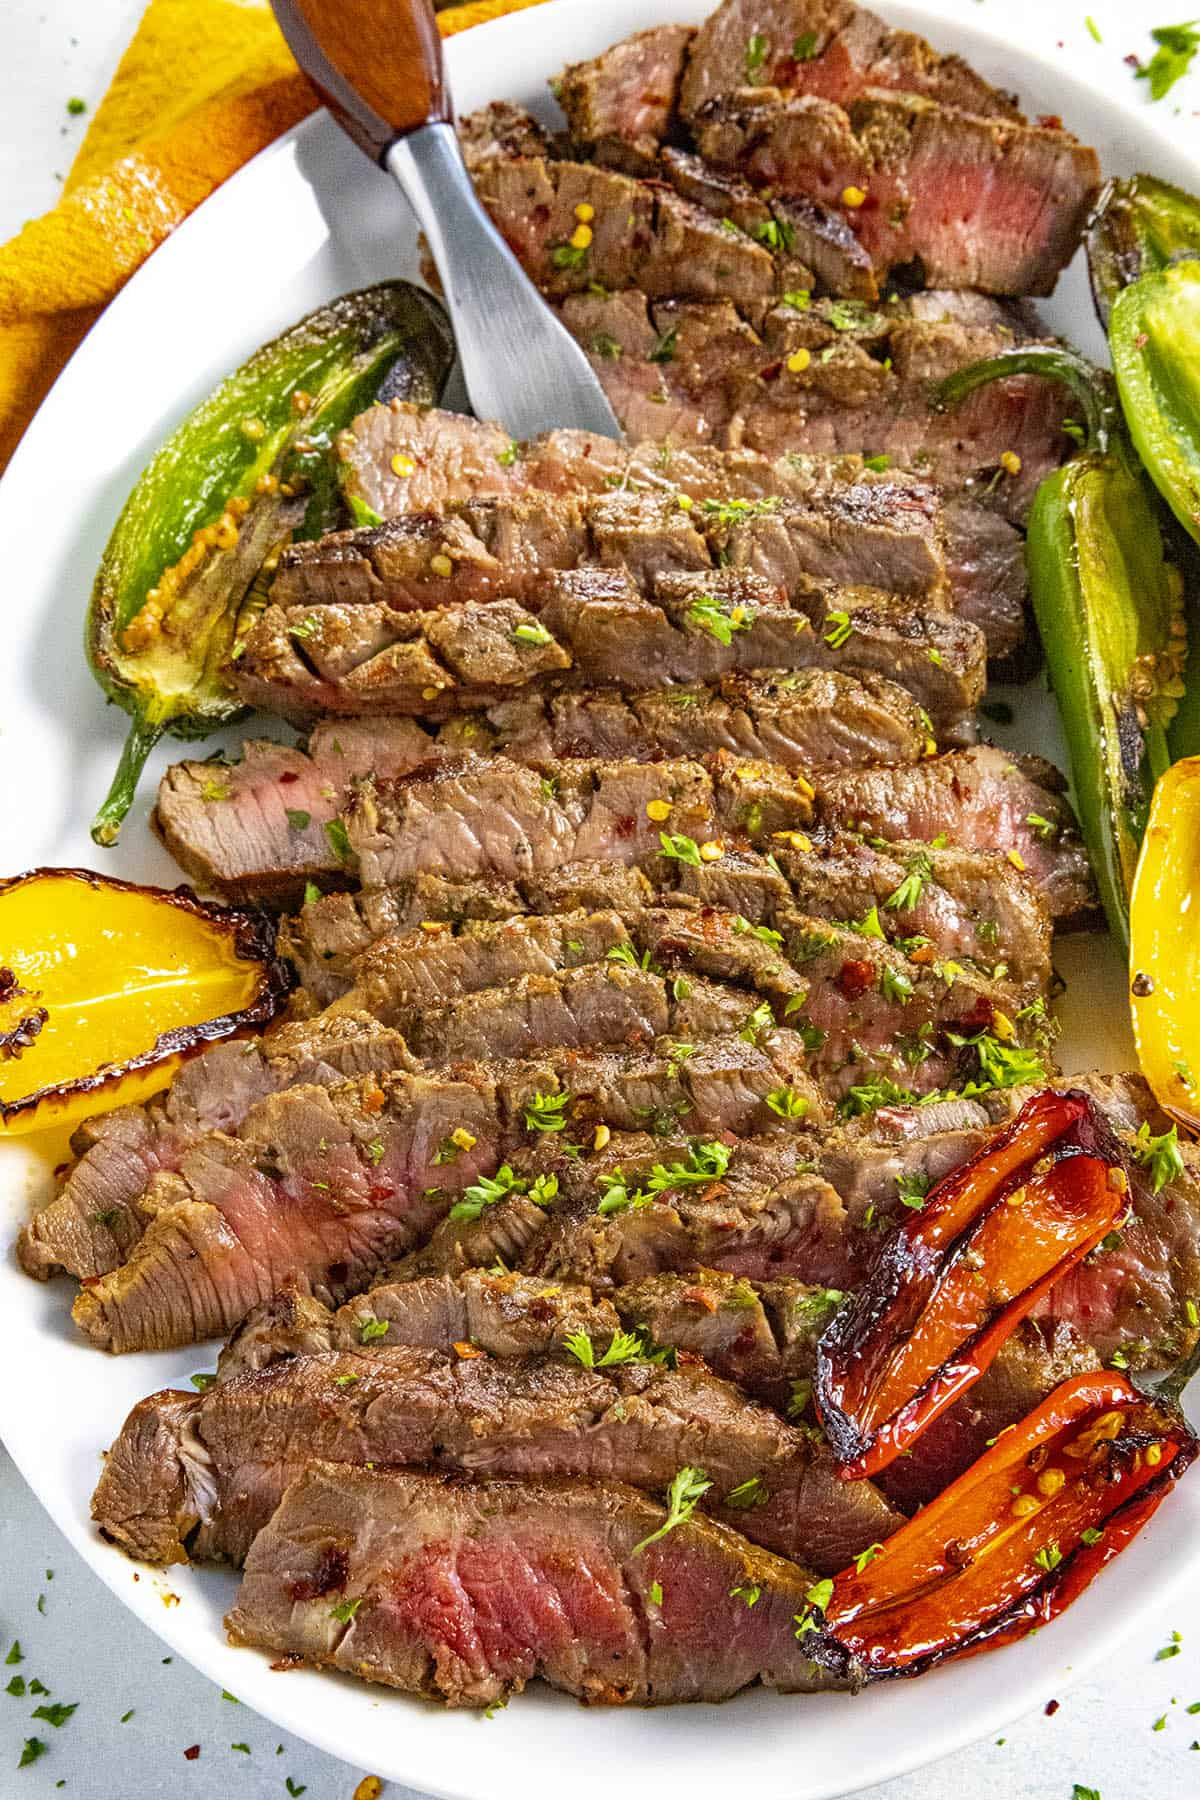 Serving sliced London broil on a platter with grilled peppers